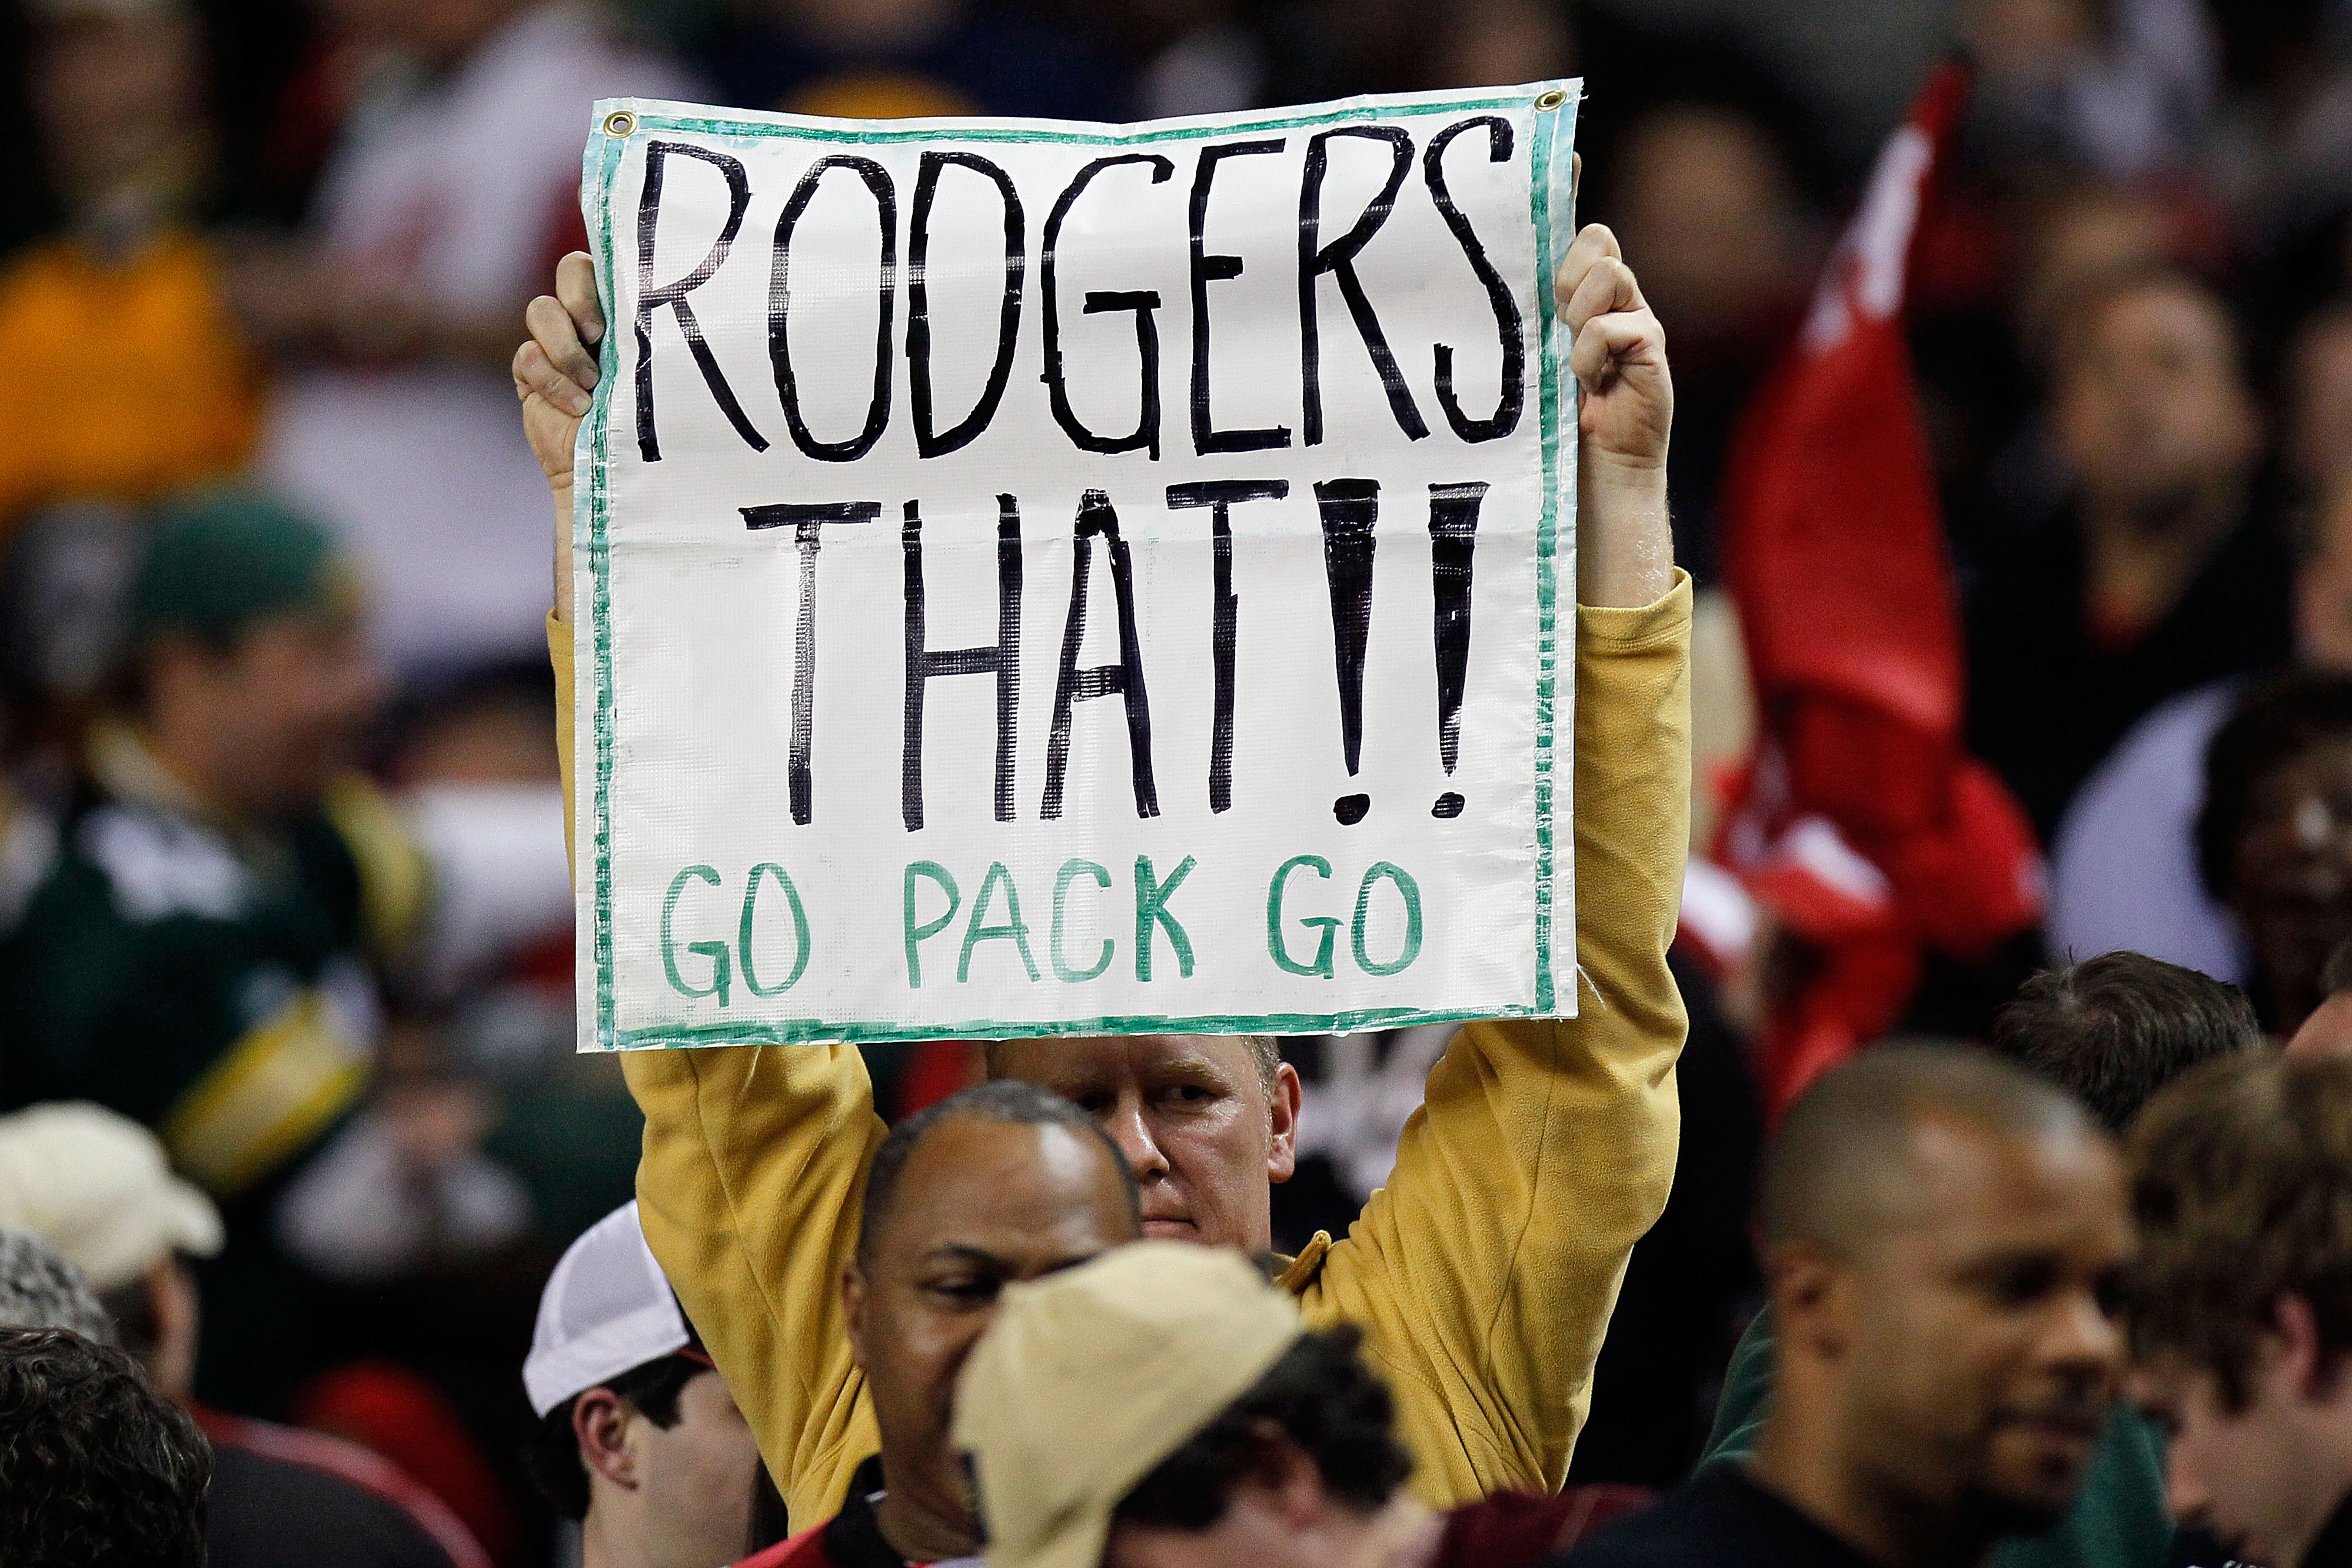 ATLANTA, GA - JANUARY 15:  A fan of the Green Bay Packers holds up a sign which reads 'Rodgers THat Go Pack Go' against the Atlanta Falcons during their 2011 NFC divisional playoff game at Georgia Dome on January 15, 2011 in Atlanta, Georgia.  (Photo by K